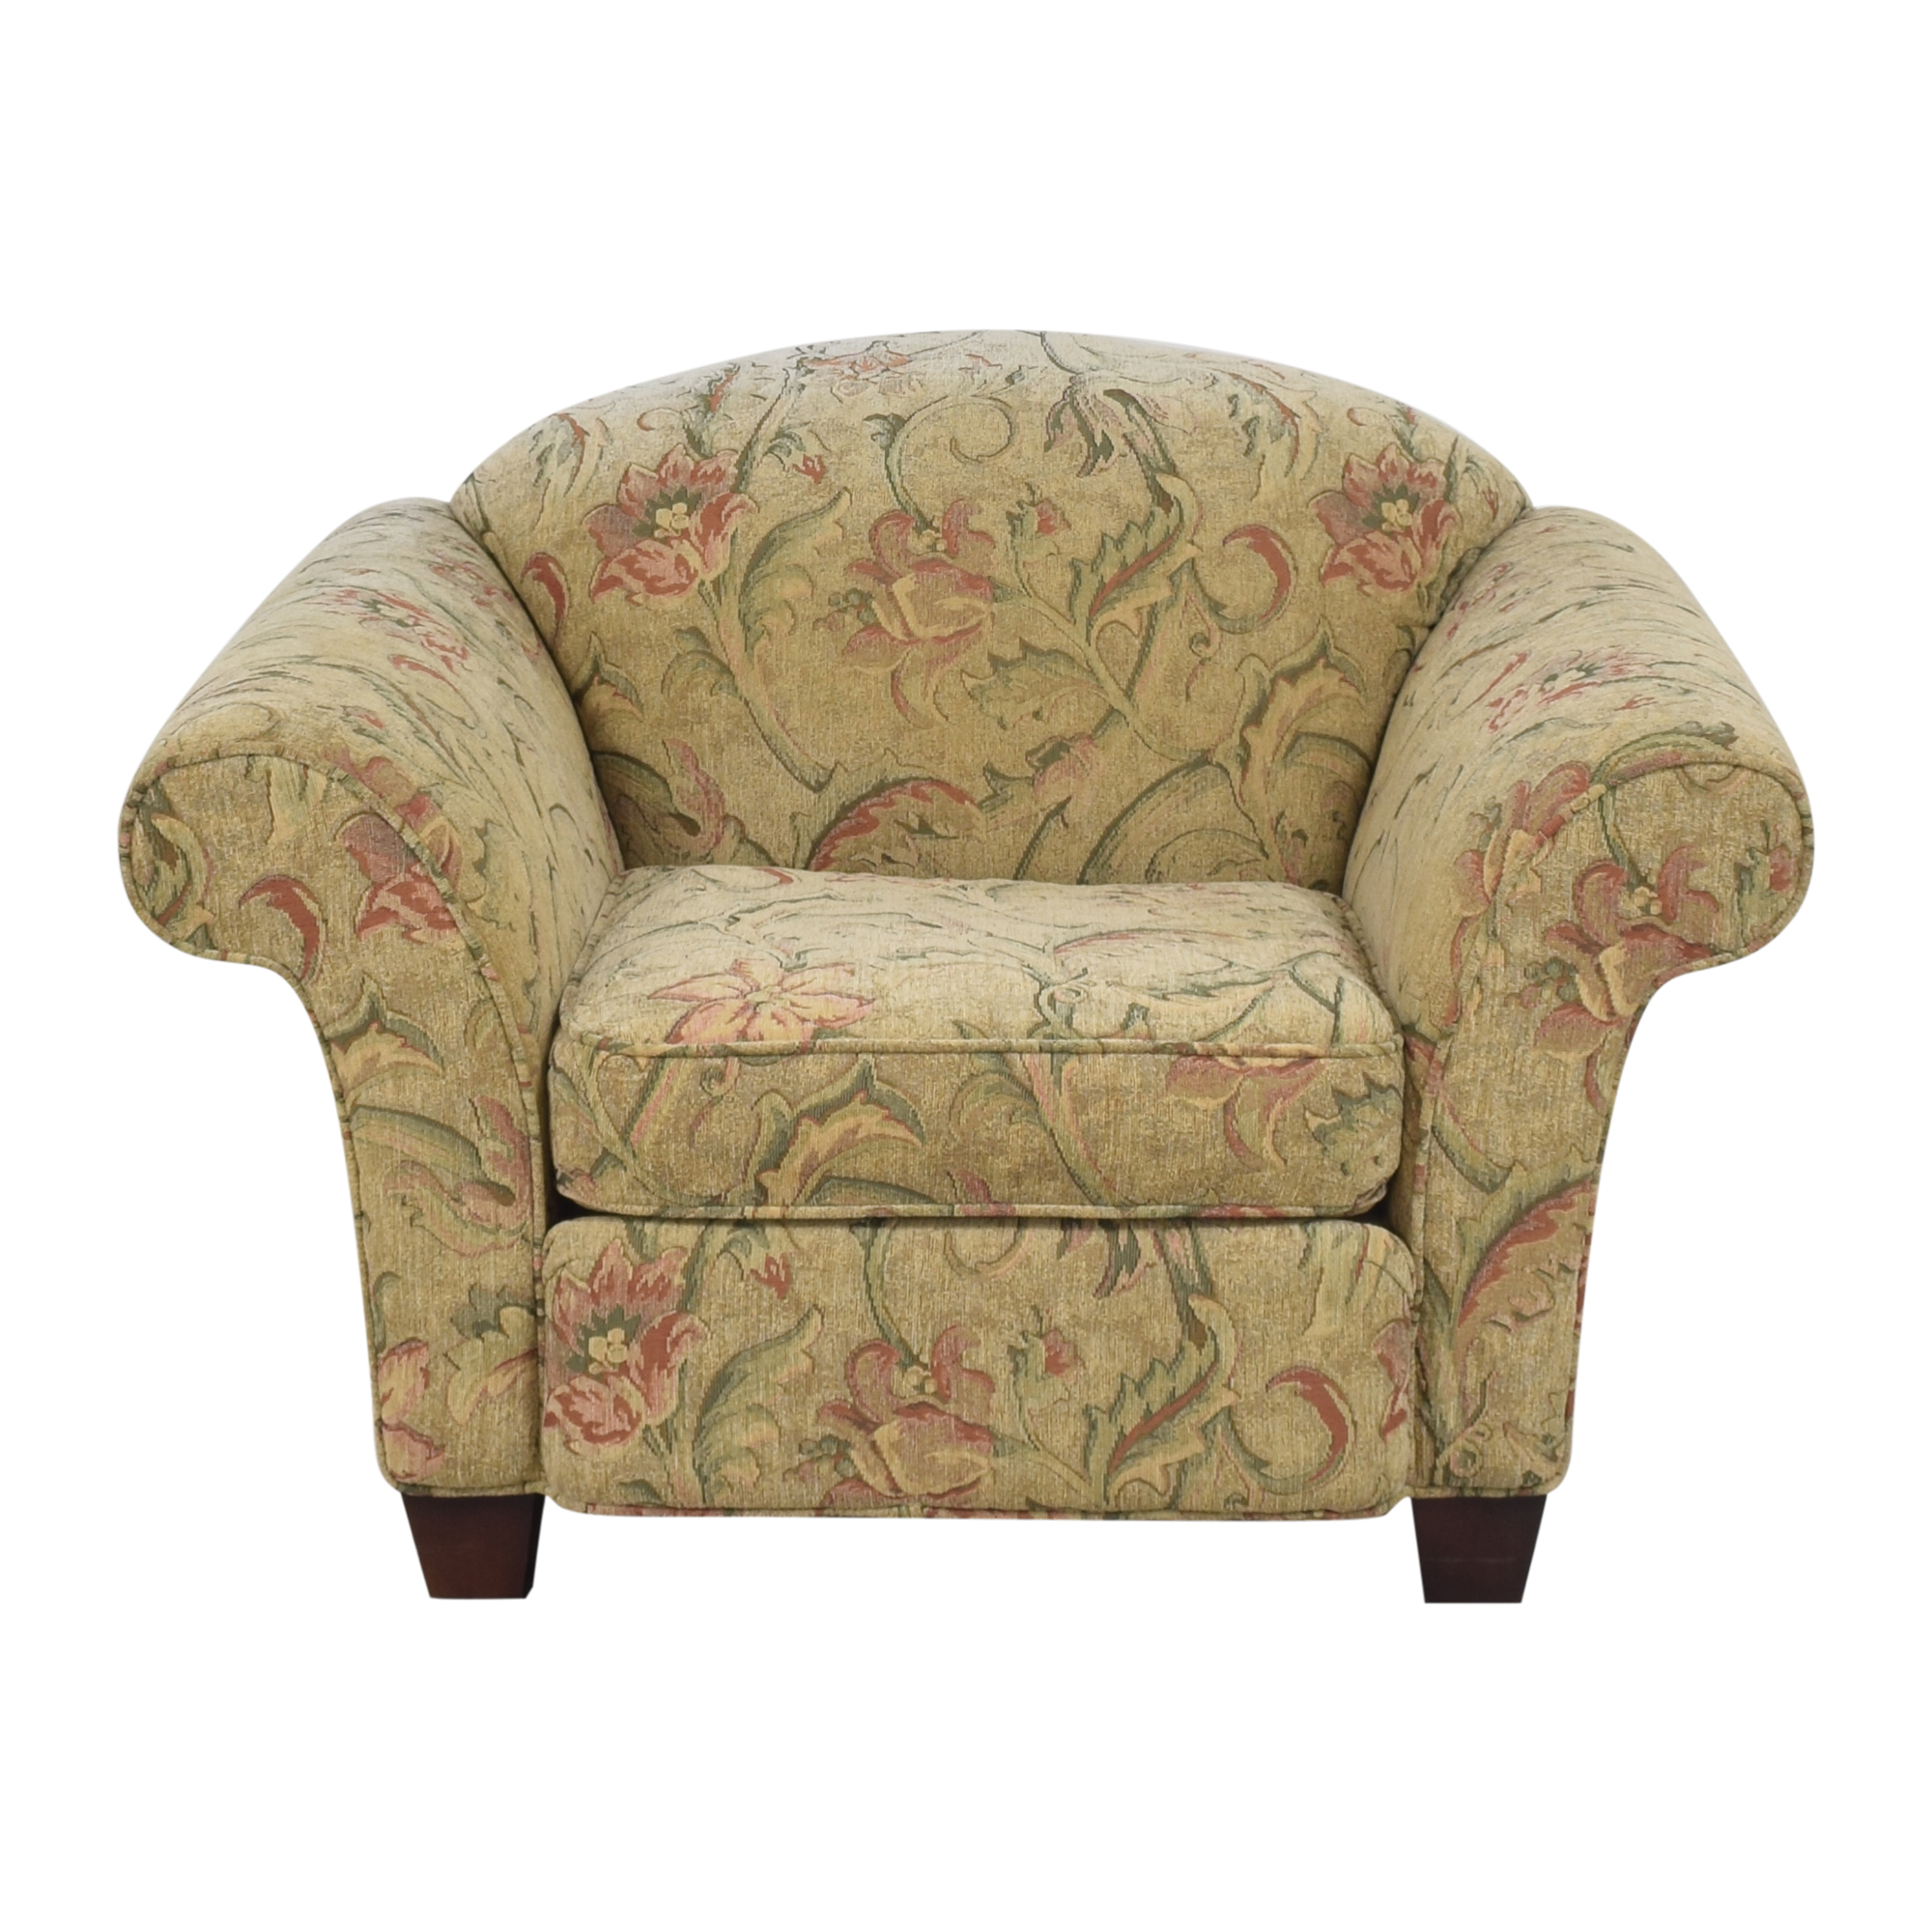 Braxton Culler Braxton Culler Floral Roll Arm Chair on sale